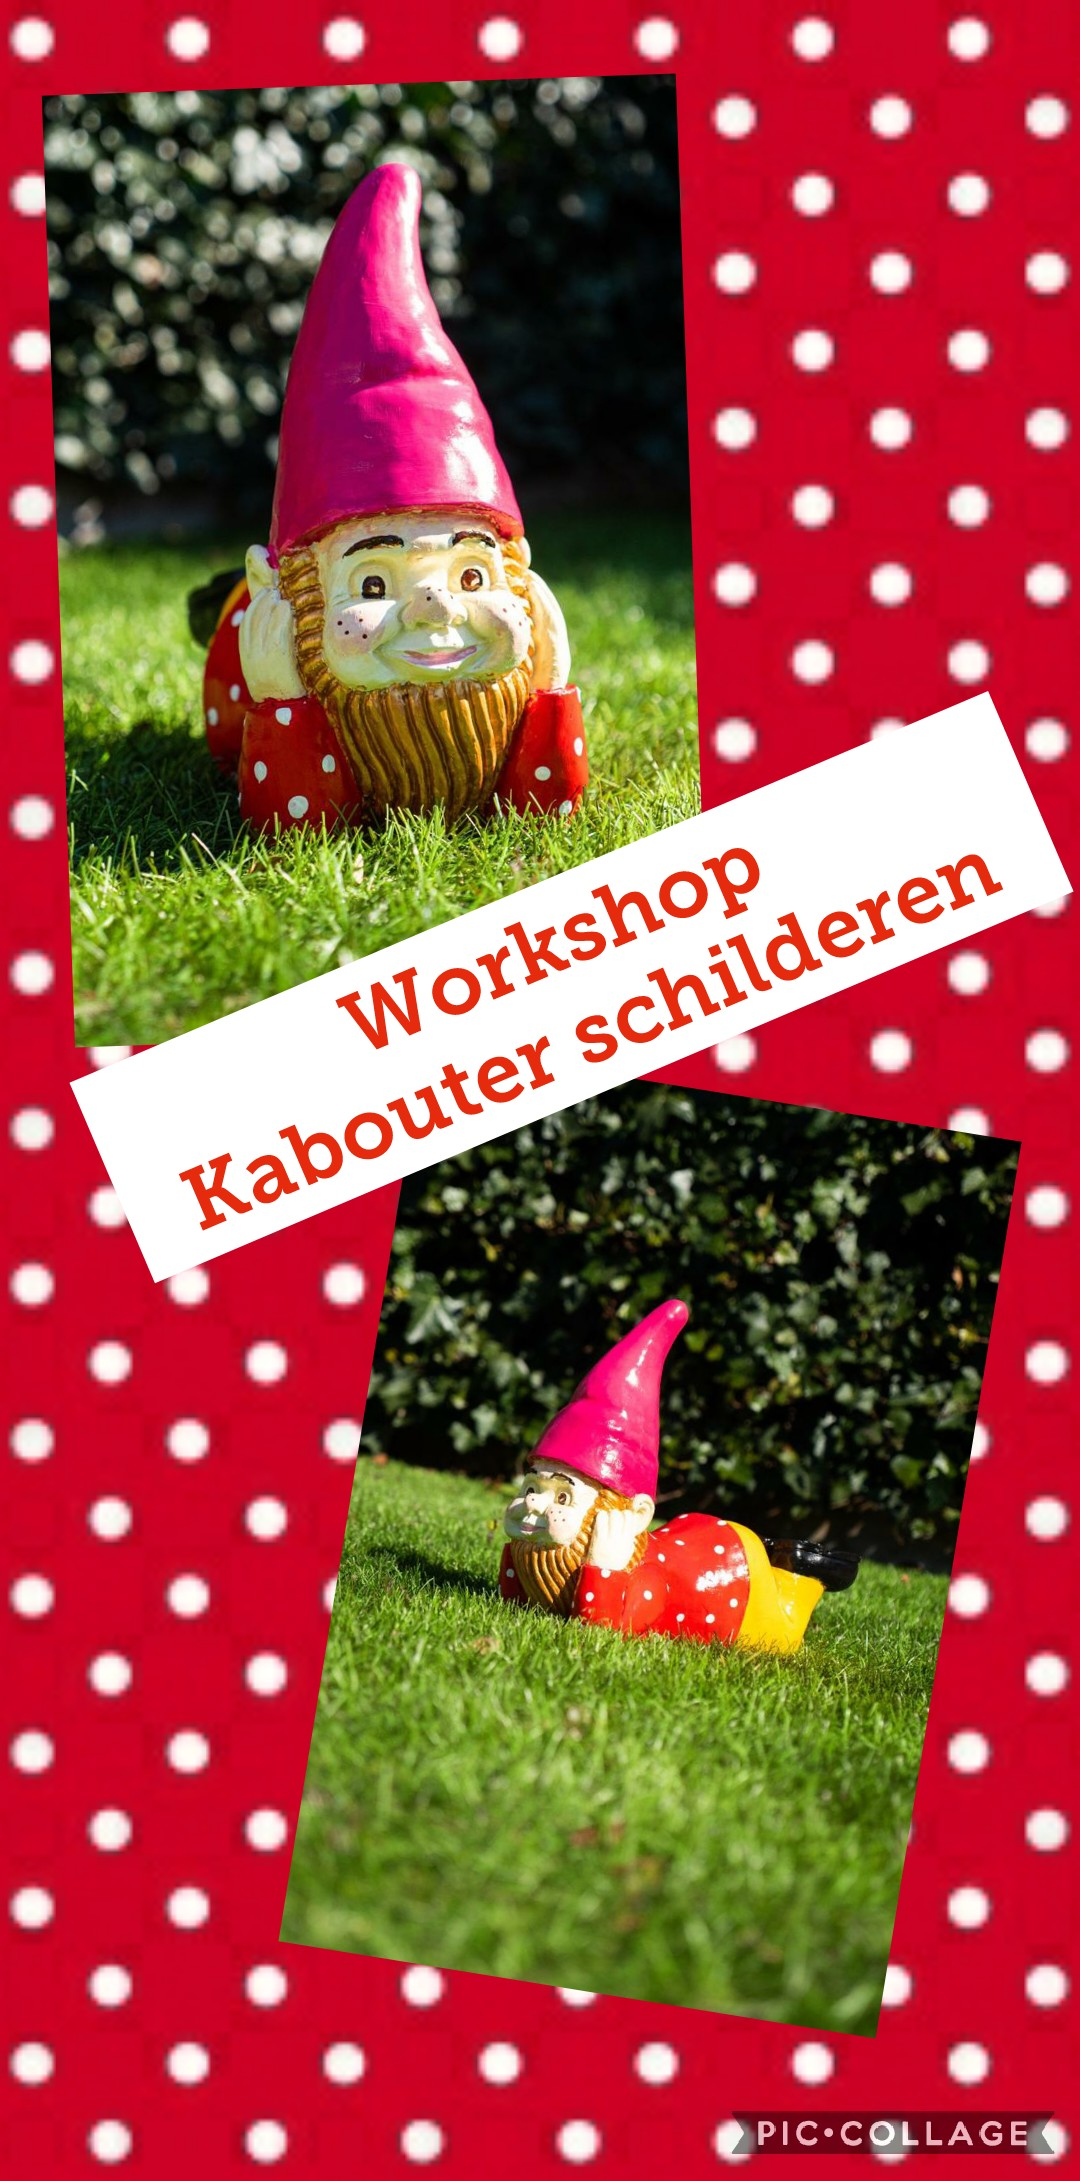 Workshop Tuinposter maken